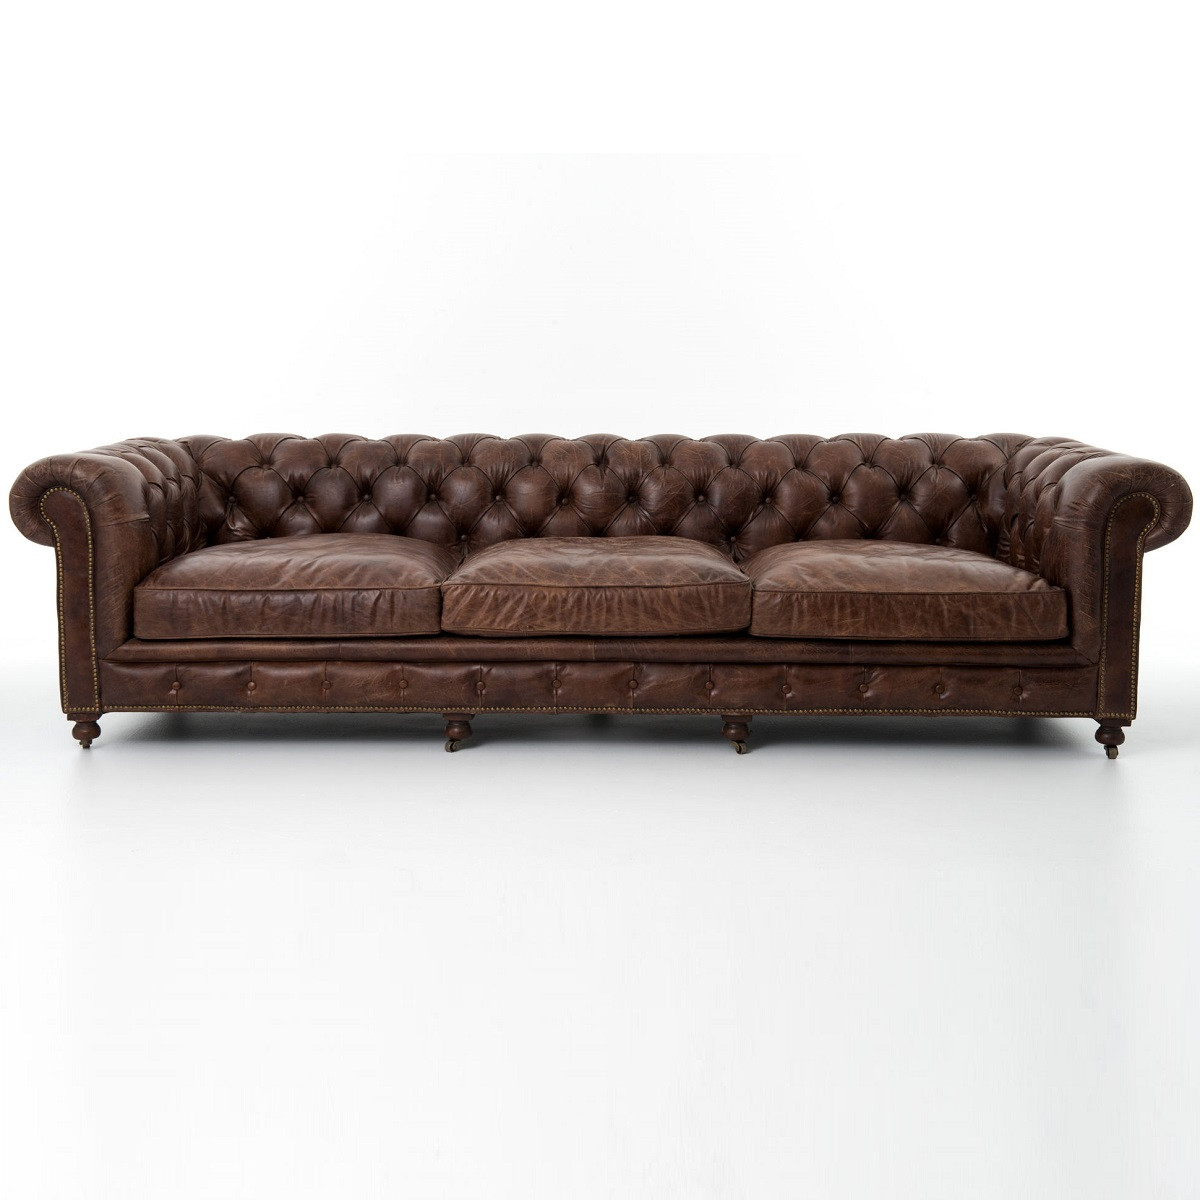 "Conrad 118"" Vintage Cigar Leather Chesterfield Sofa Zin Home"